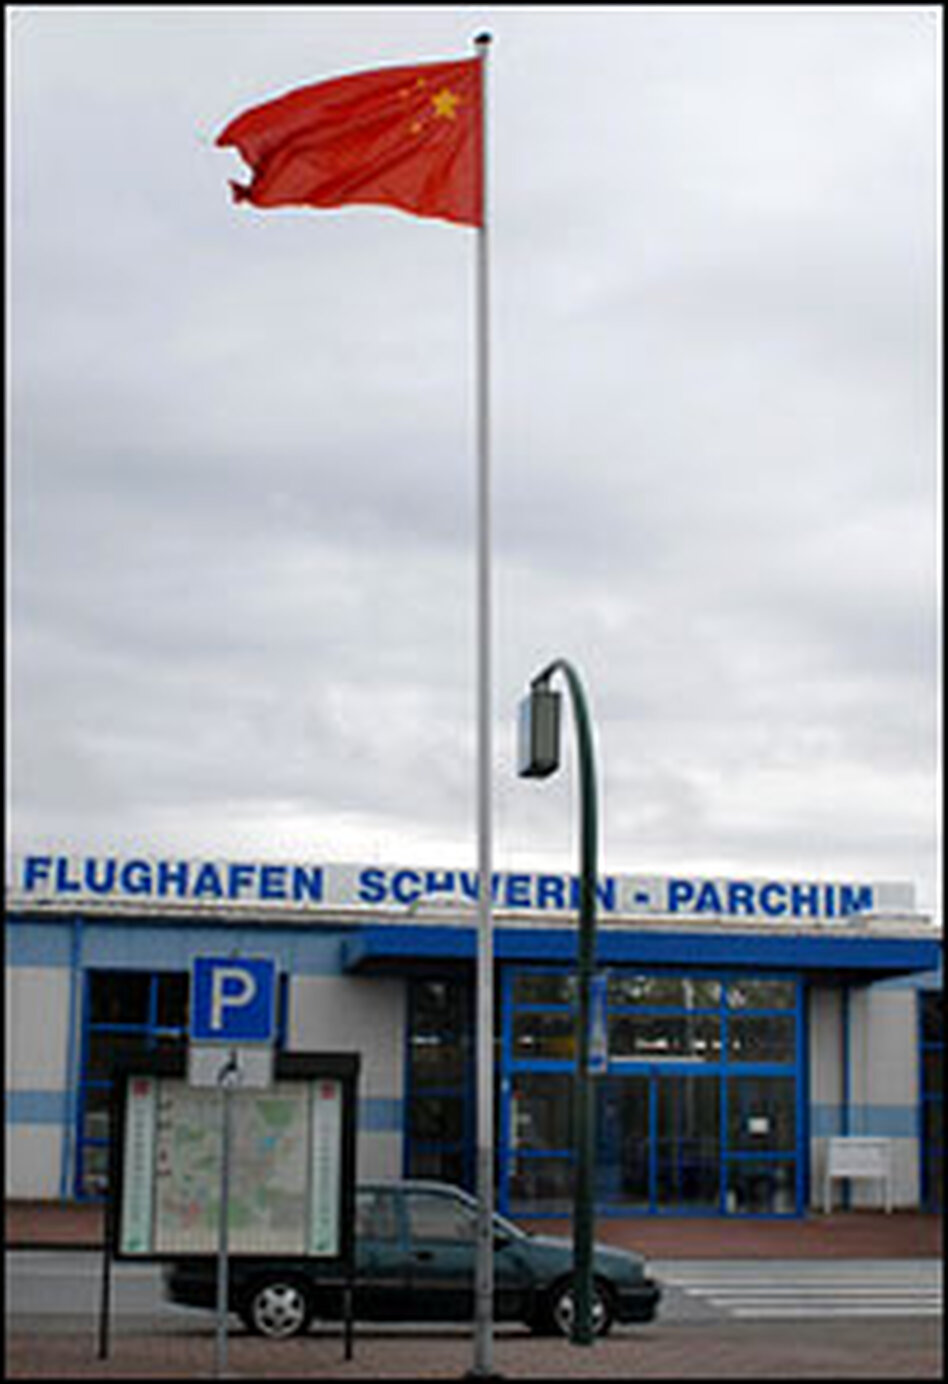 A Chinese flag flies above the terminal of eastern Germany's Parchim International Airport in honor of its new owners, a Chinese firm called LinkGlobal Logistics.